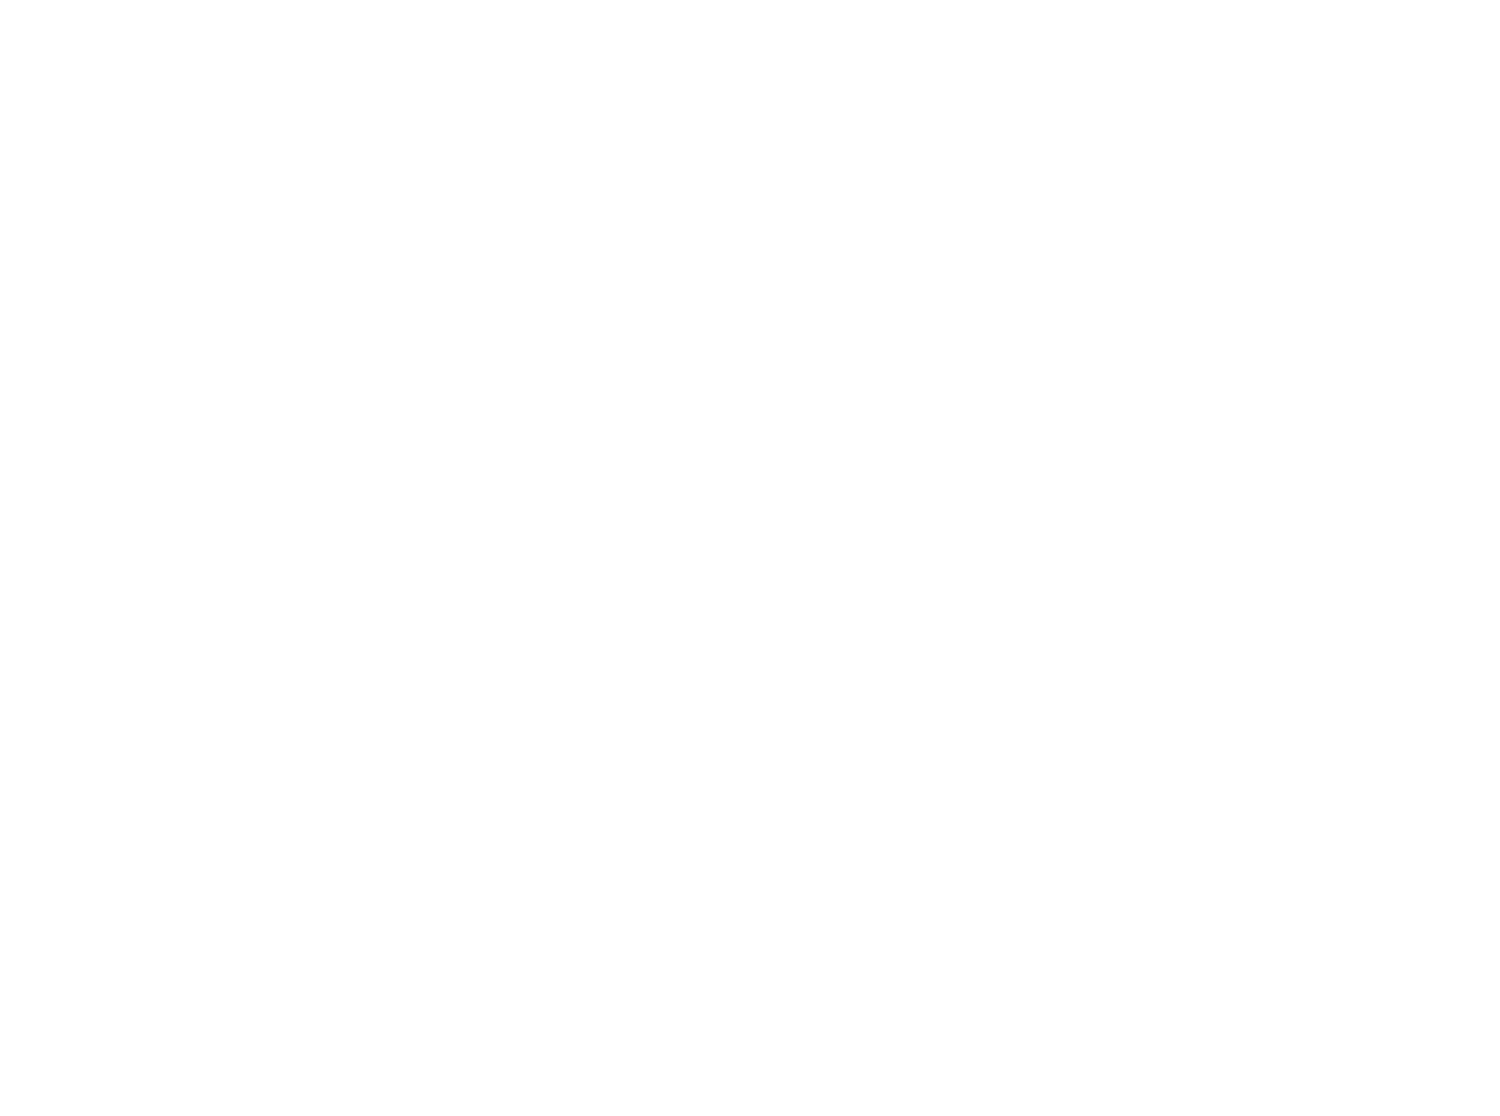 Bird Street Brewing